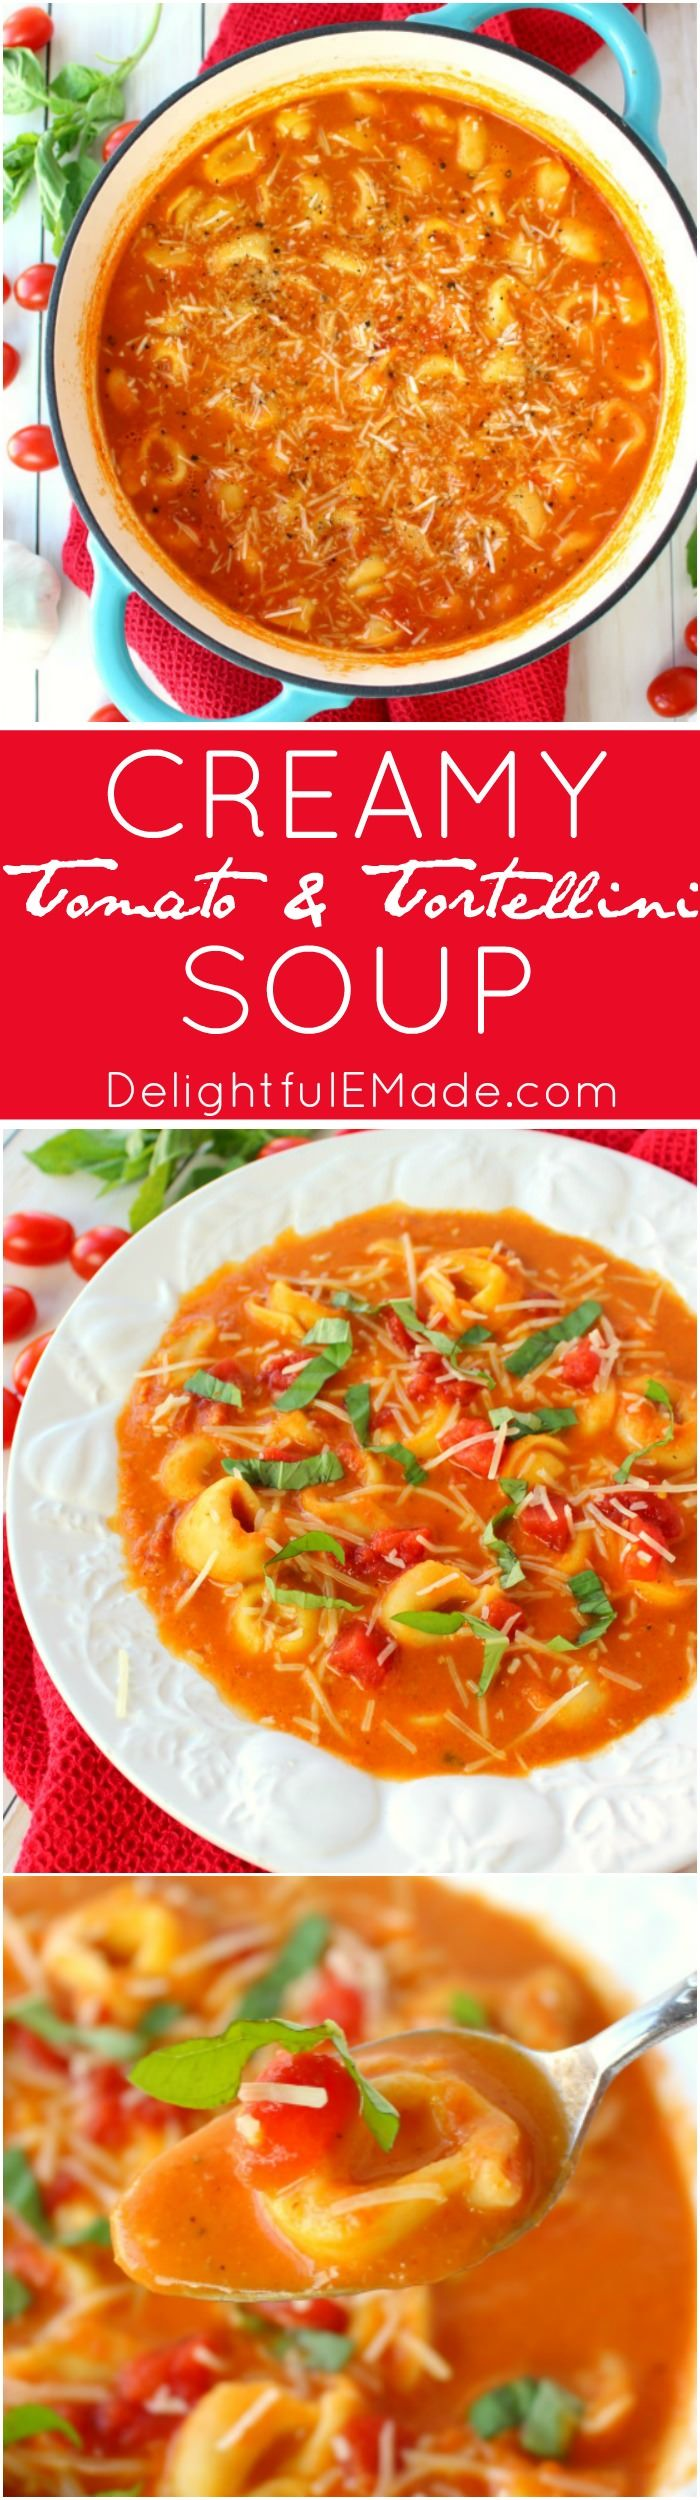 This fantastic tomato soup recipe has it all! Creamy, delicious tomatoes are simmered together with Parmesan cheese, tender tortellini and topped with fresh basil. This soup is a fantastic Christmas Eve dish or wonderful anytime you're looking to warm up